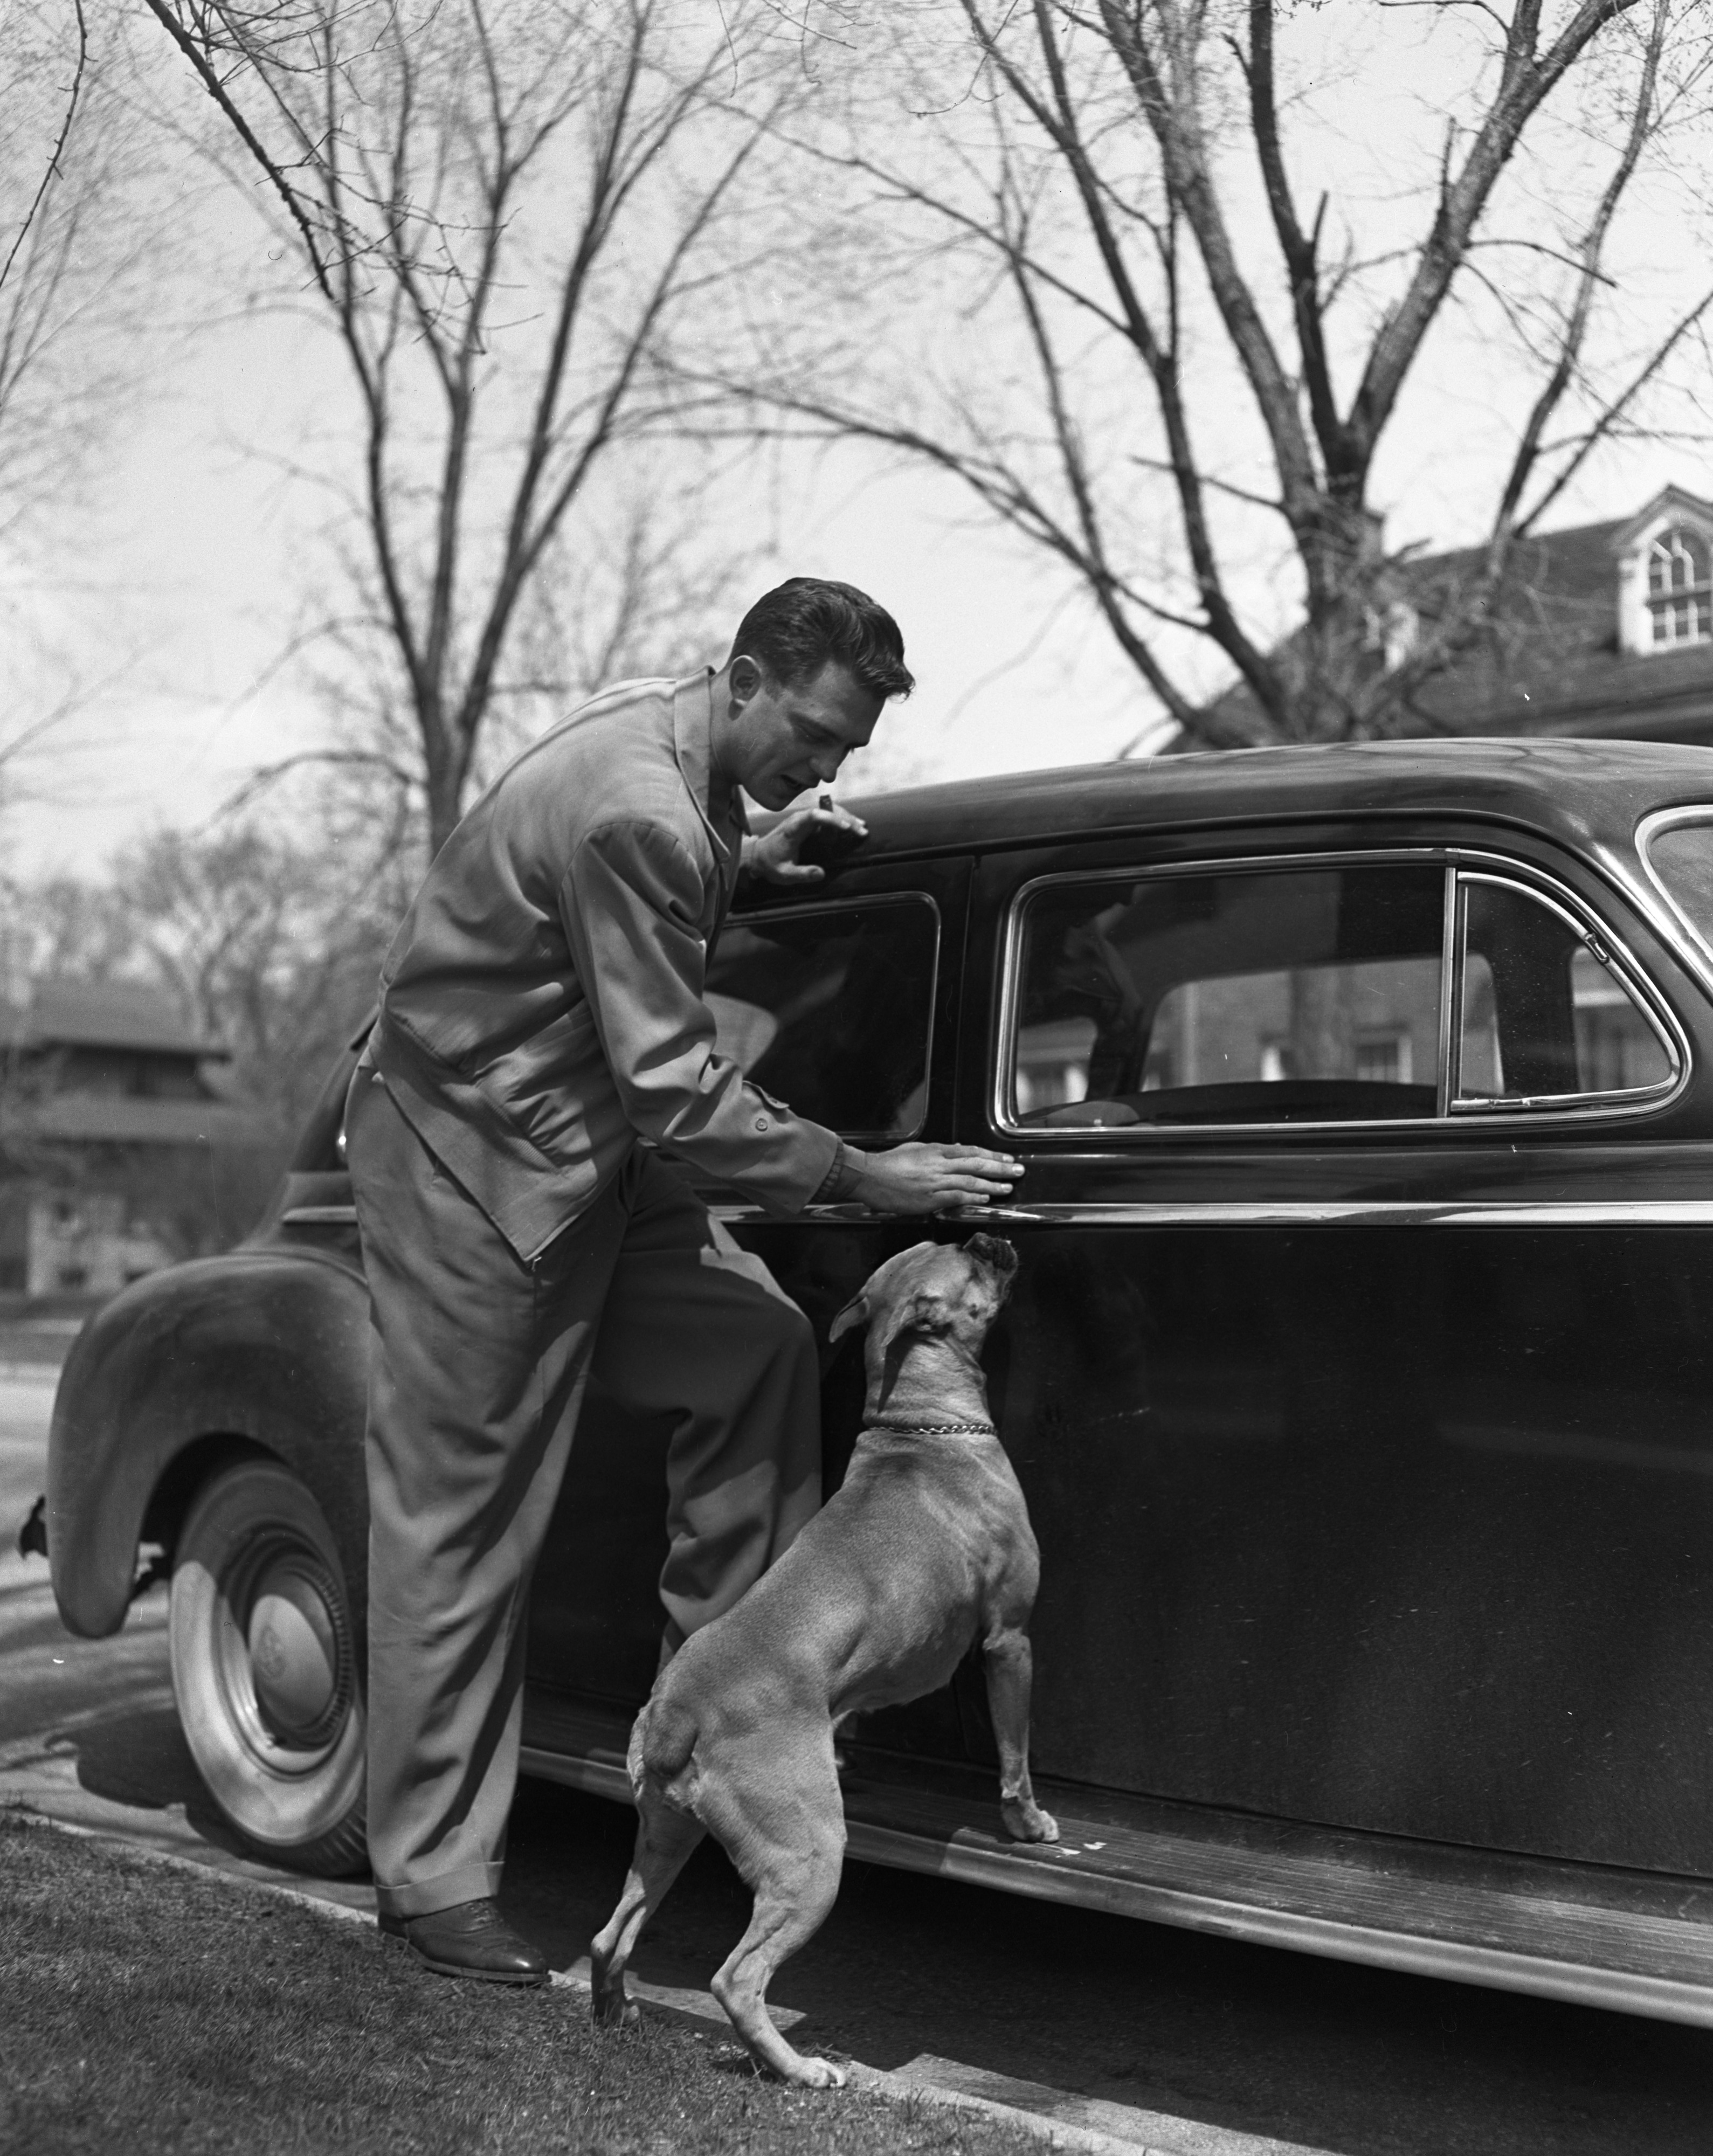 Former Detroit Tiger Dick Wakefield with his dog after the White Sox refused him, May 1950 image